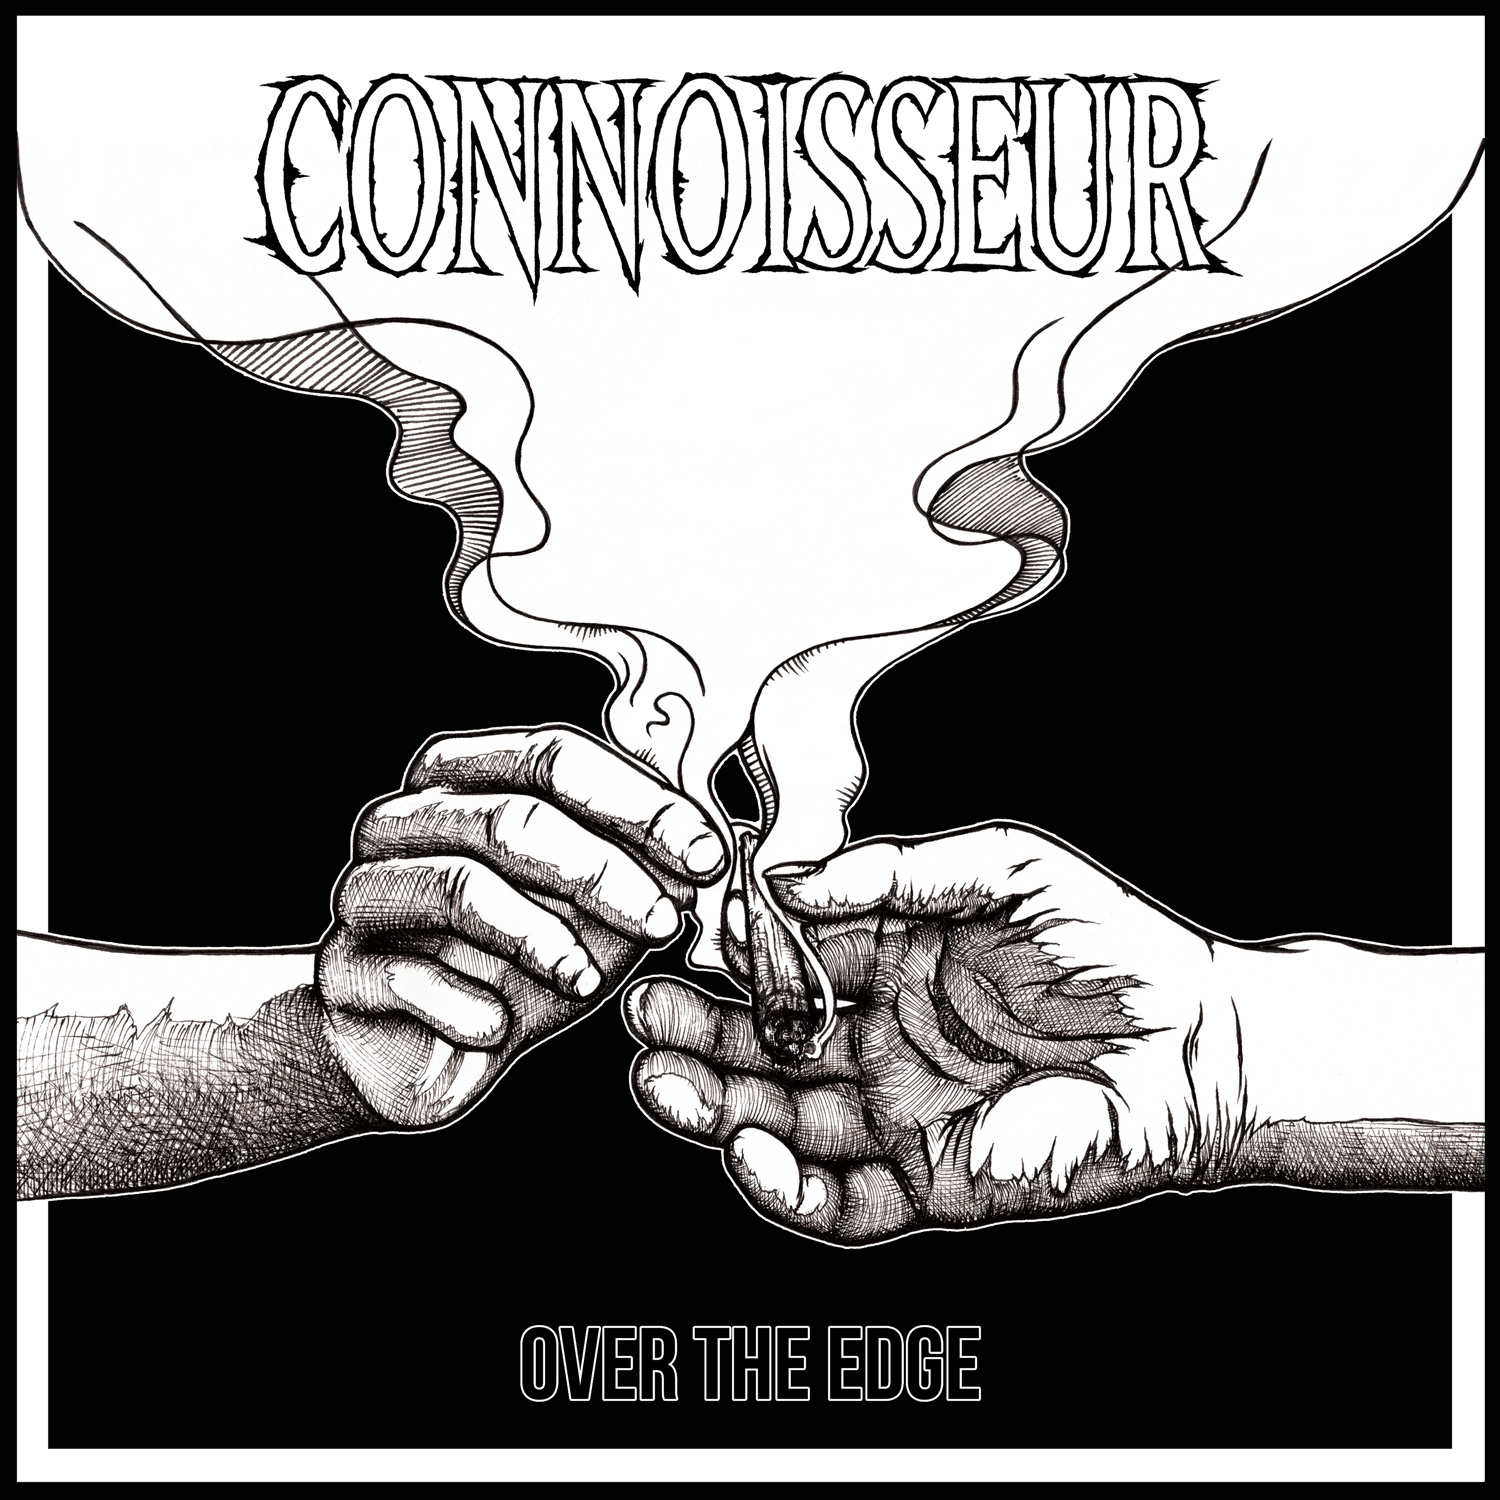 Connoisseur-OverTheEdge-1500x1500